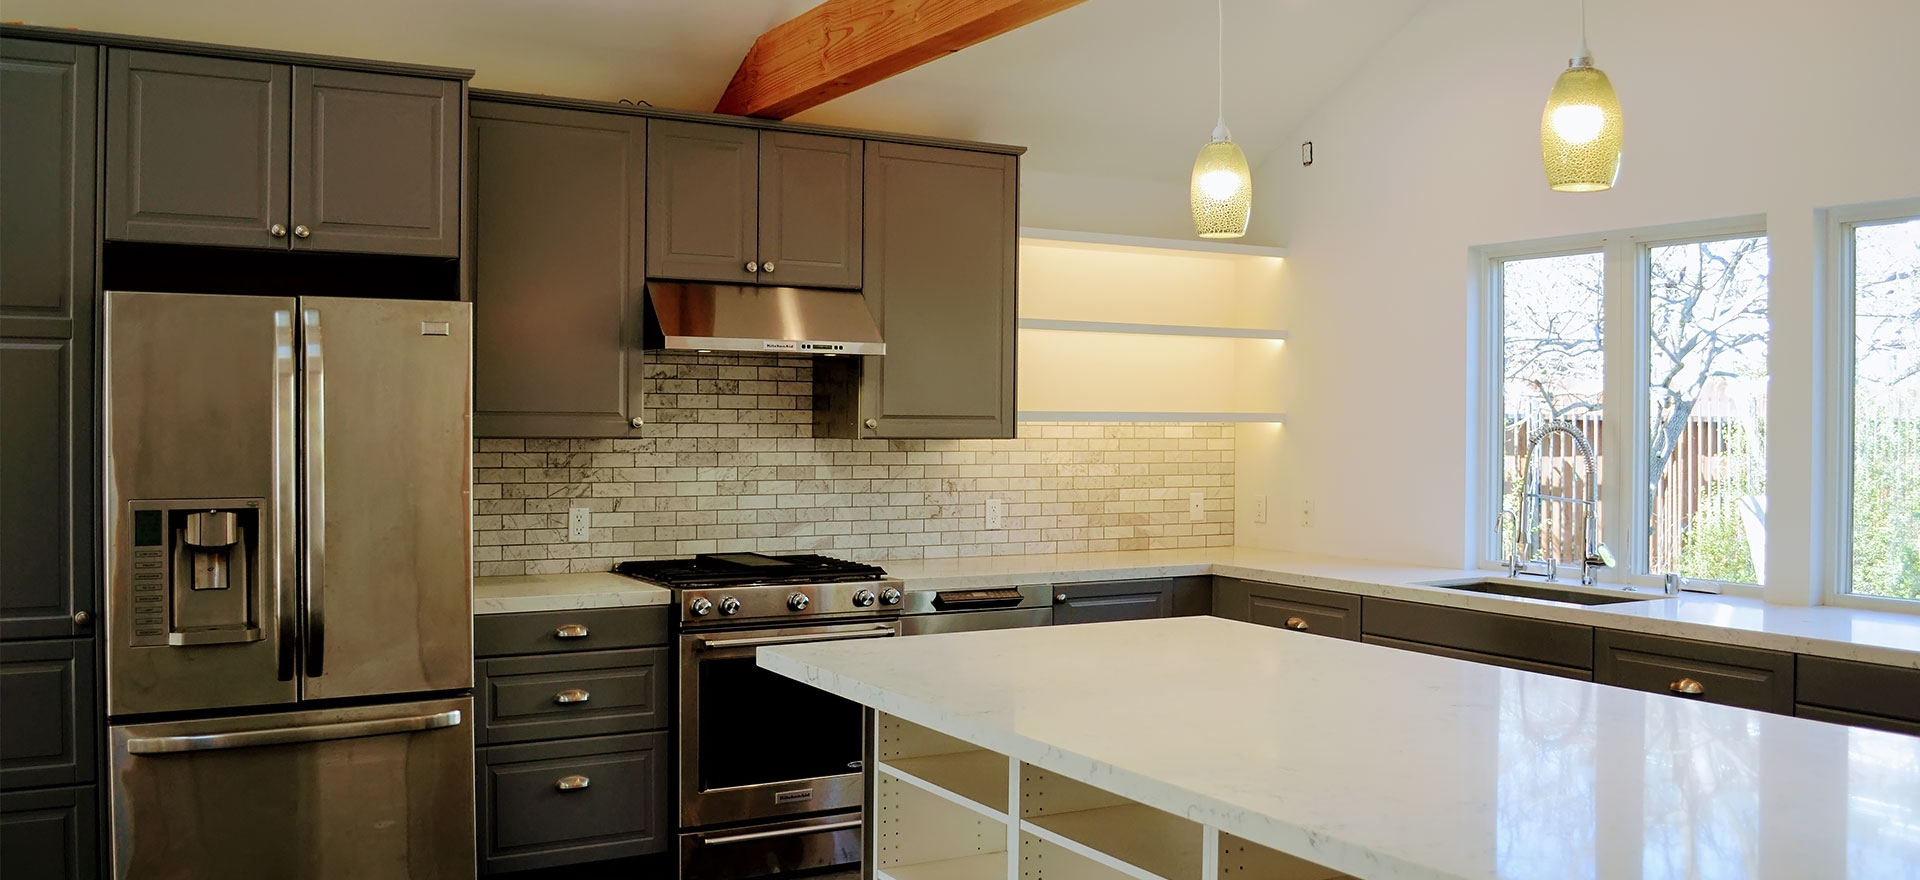 Kitchen Remodel by Luxus Construction